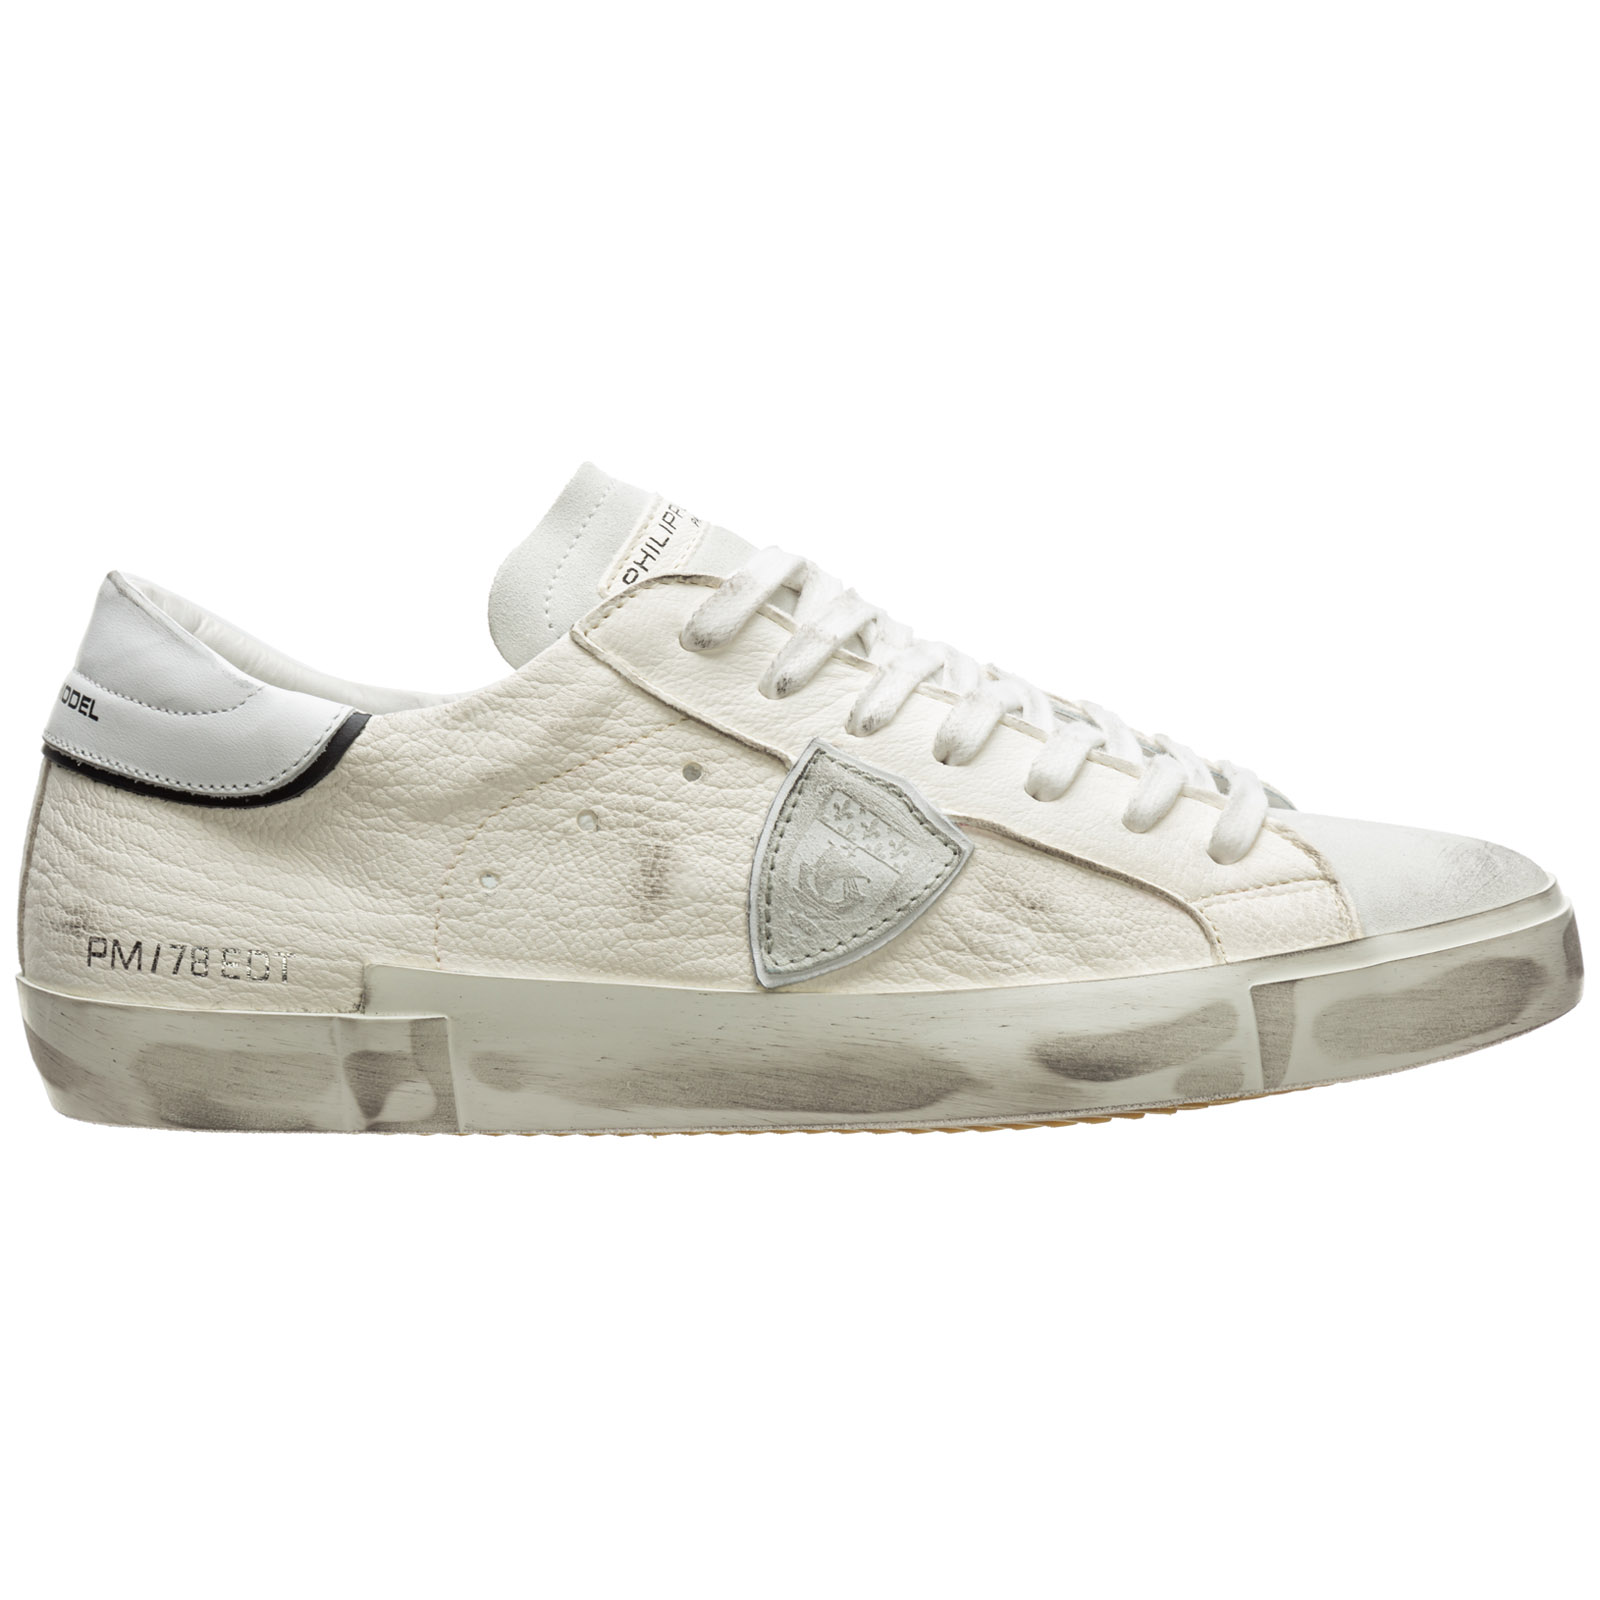 Philippe Model Sneakers MEN'S SHOES LEATHER TRAINERS SNEAKERS PARIS